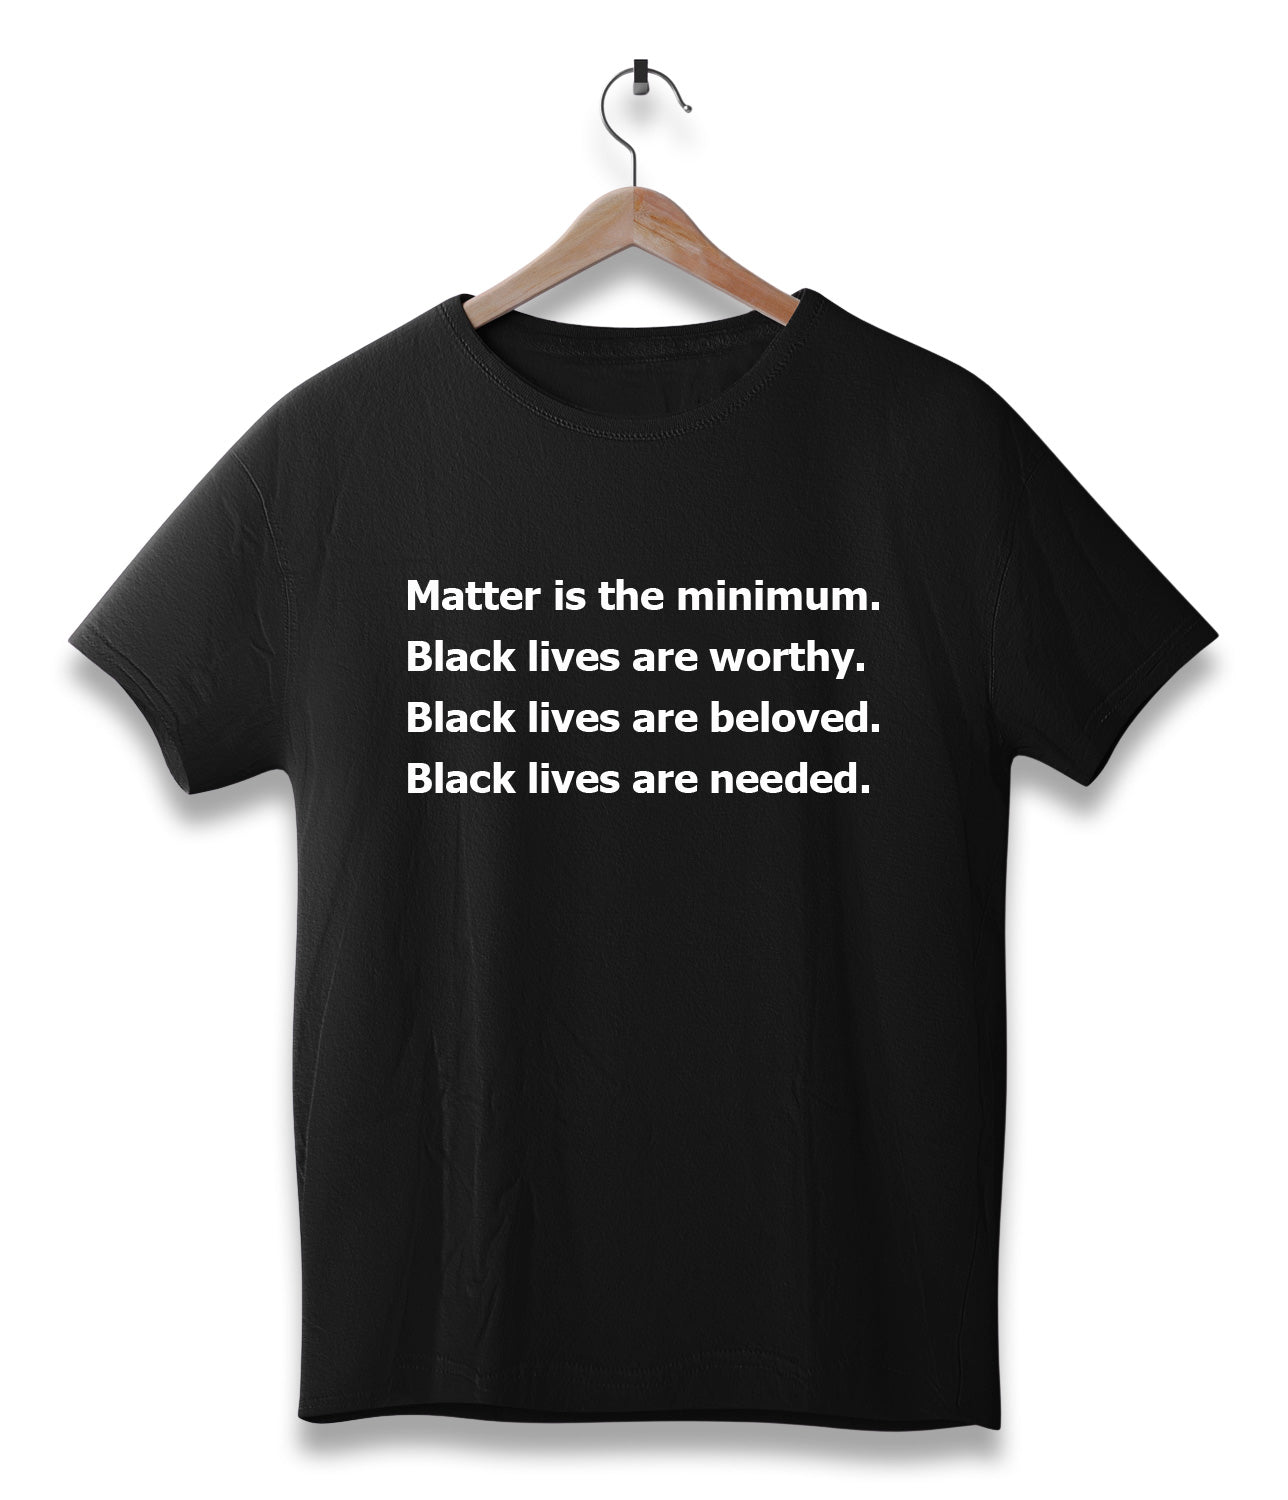 Matter is the minimum. Black lives are worthy. Black lives are beloved